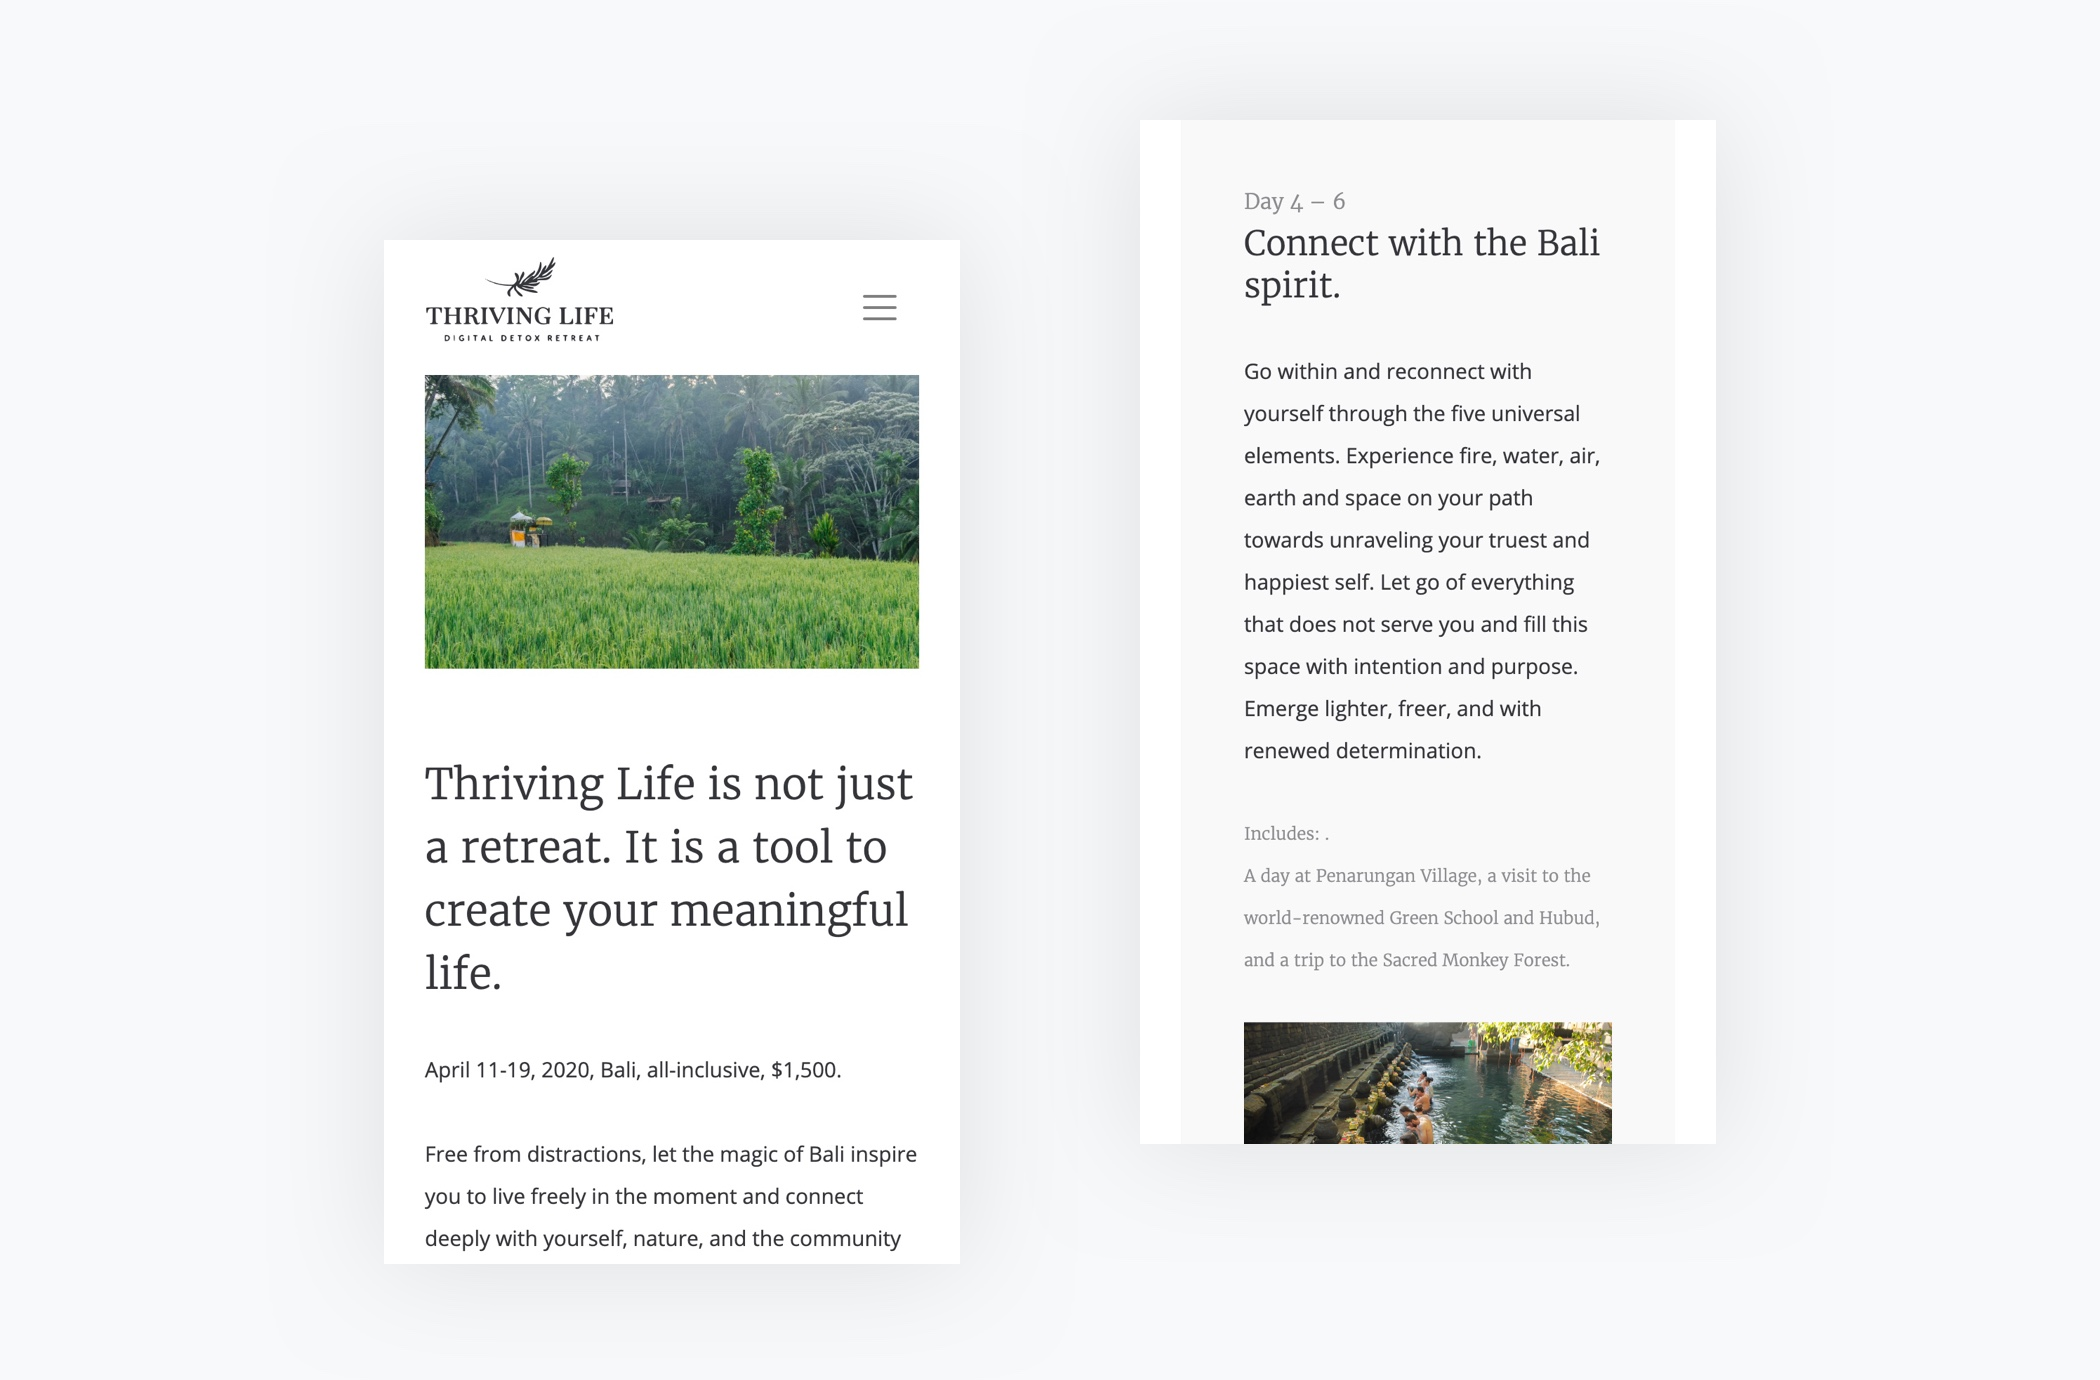 Thriving Life Digital Detox Retreat: a couple shots of the mobile homepage